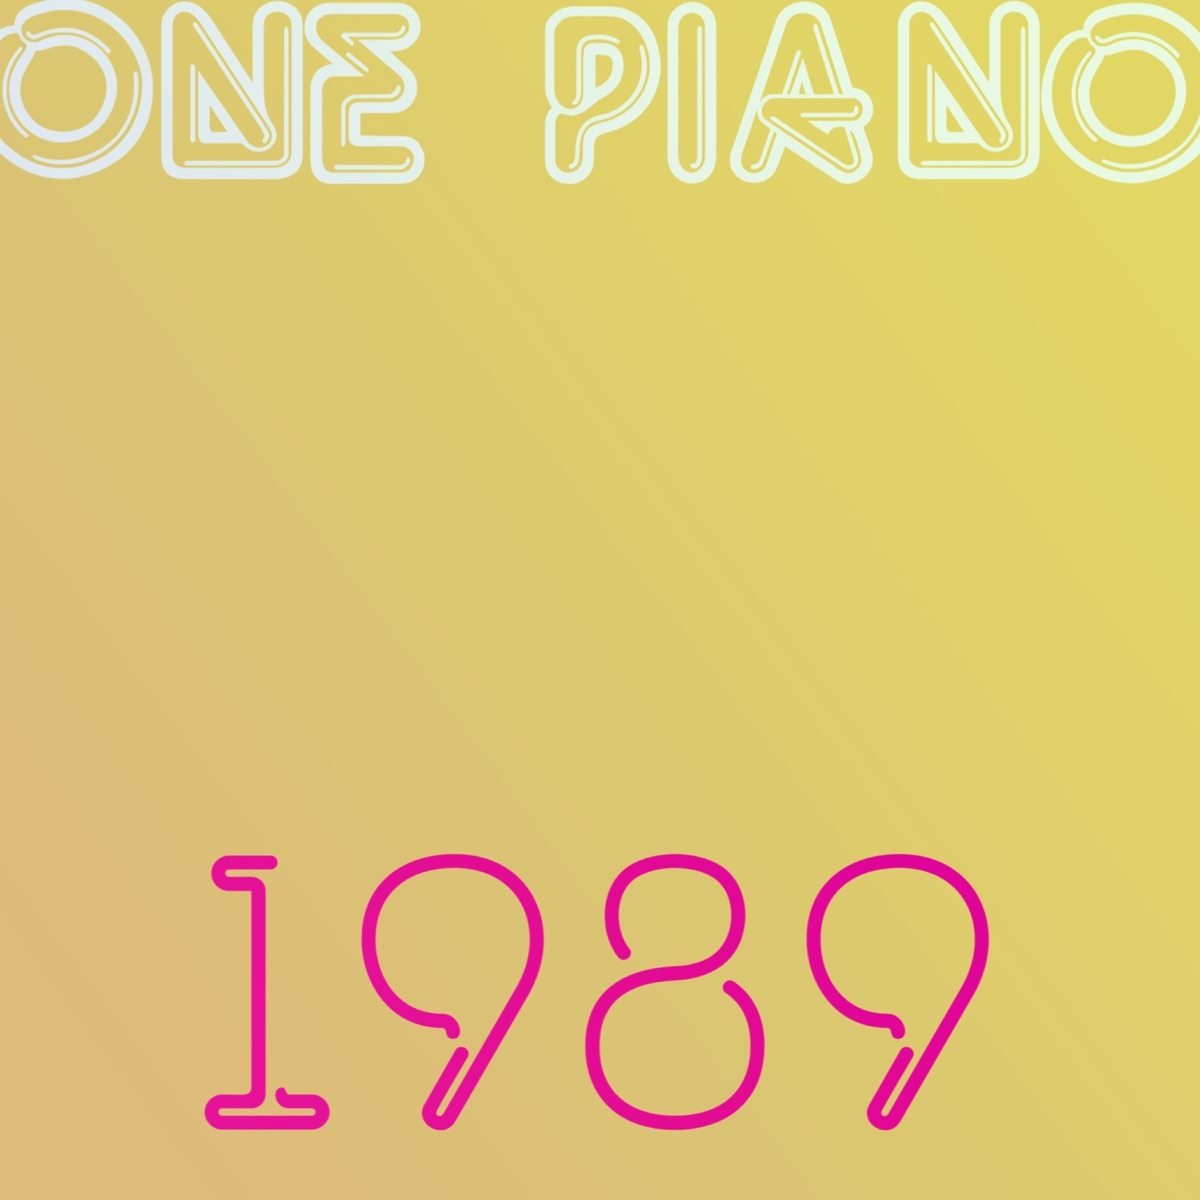 1989 One Piano CD cover